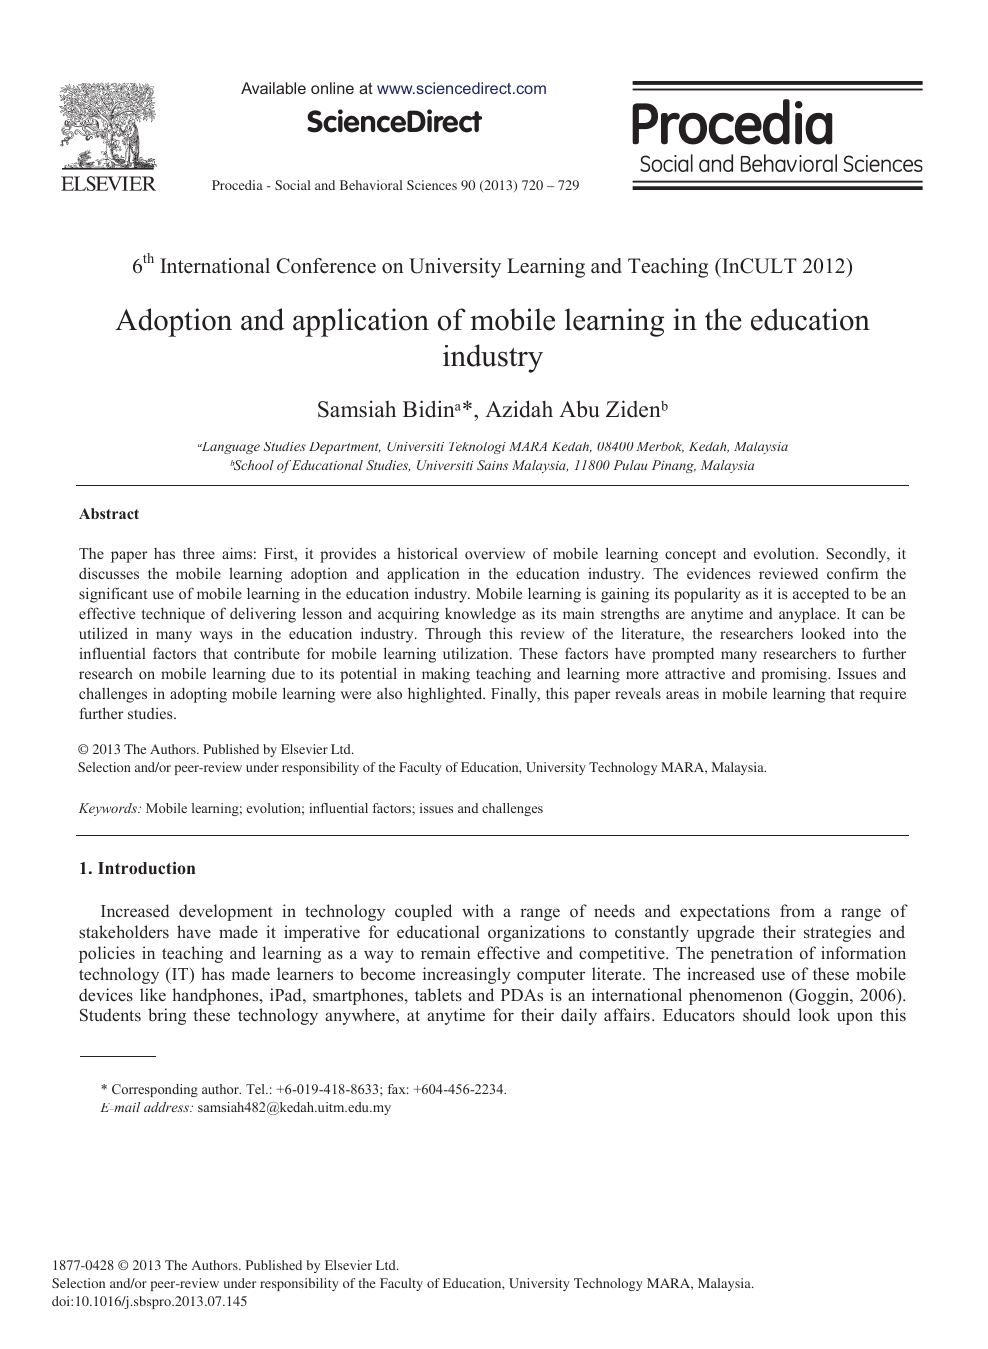 Adoption and Application of Mobile Learning in the Education